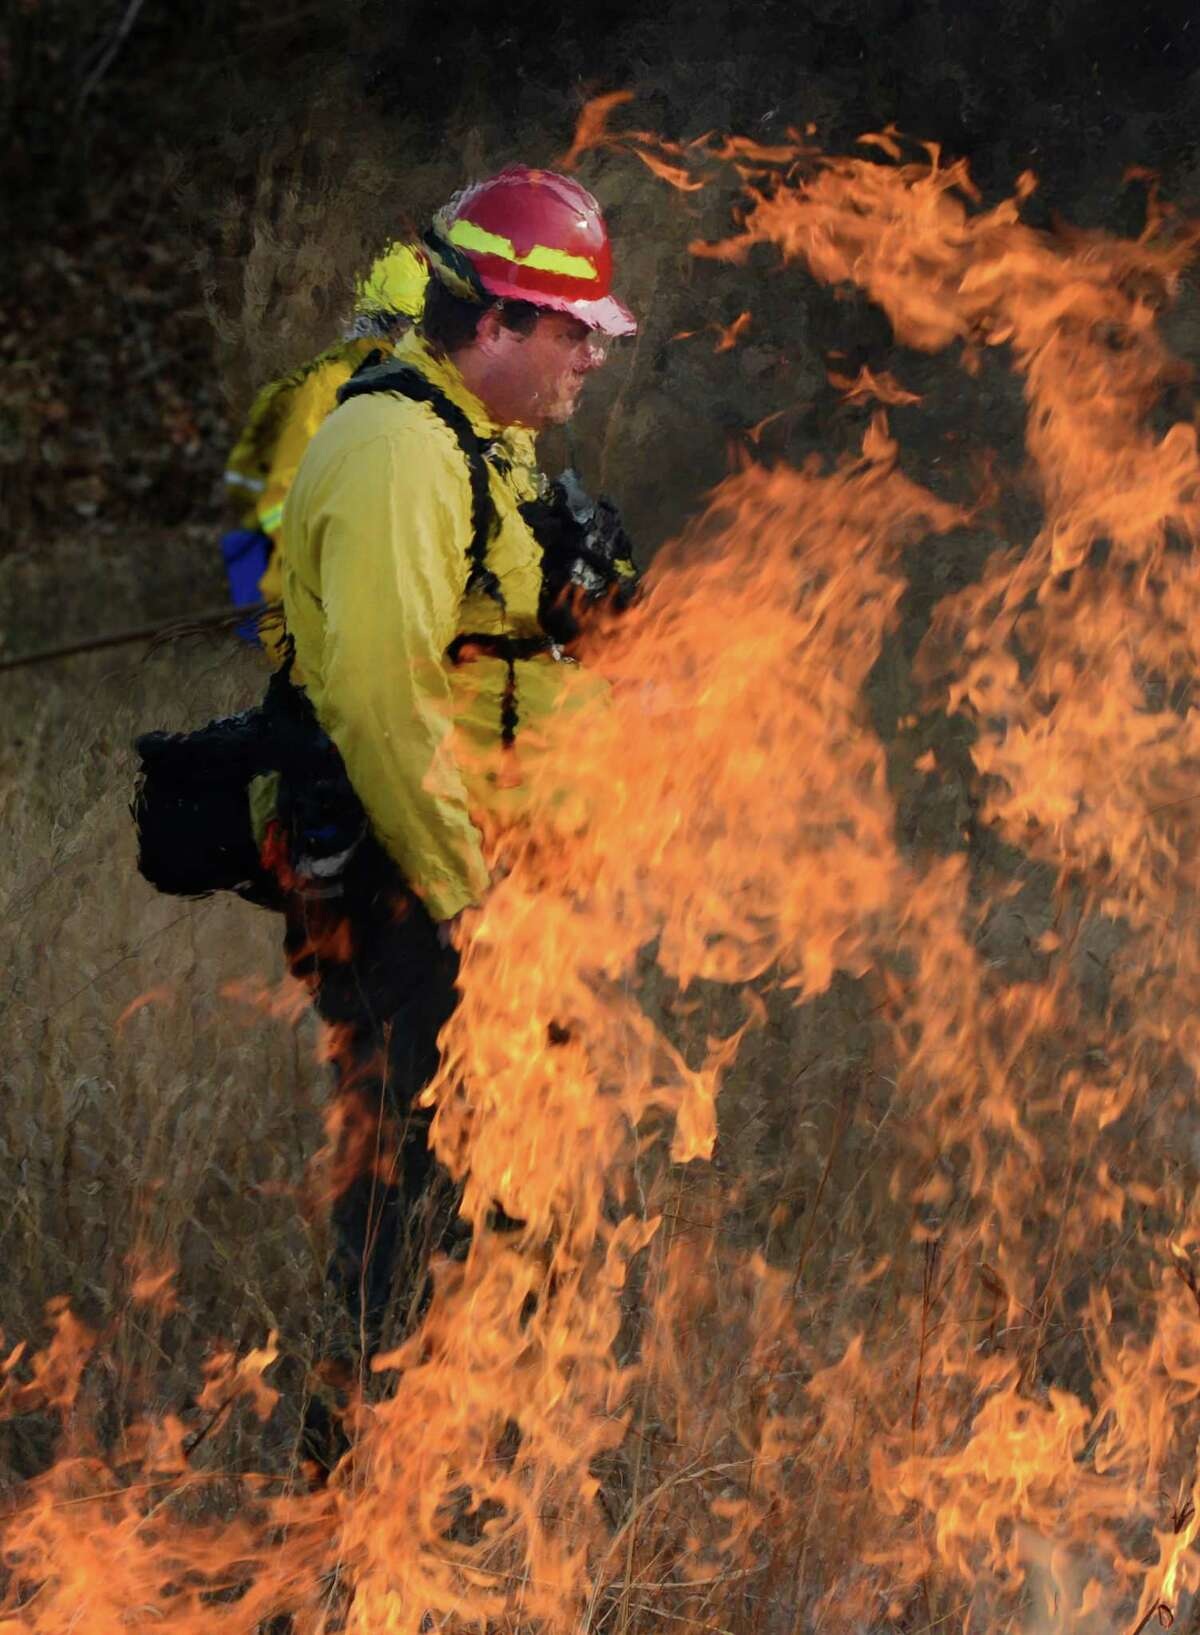 Fire Boss Joel Carlson is framed in flames as controlled fires are set at the Pine Bush Preserve during a prescribed fire to burn off old fuel and revitalize the area in Albany, N.Y. Nov 16, 2012. (Skip Dickstein/Times Union)